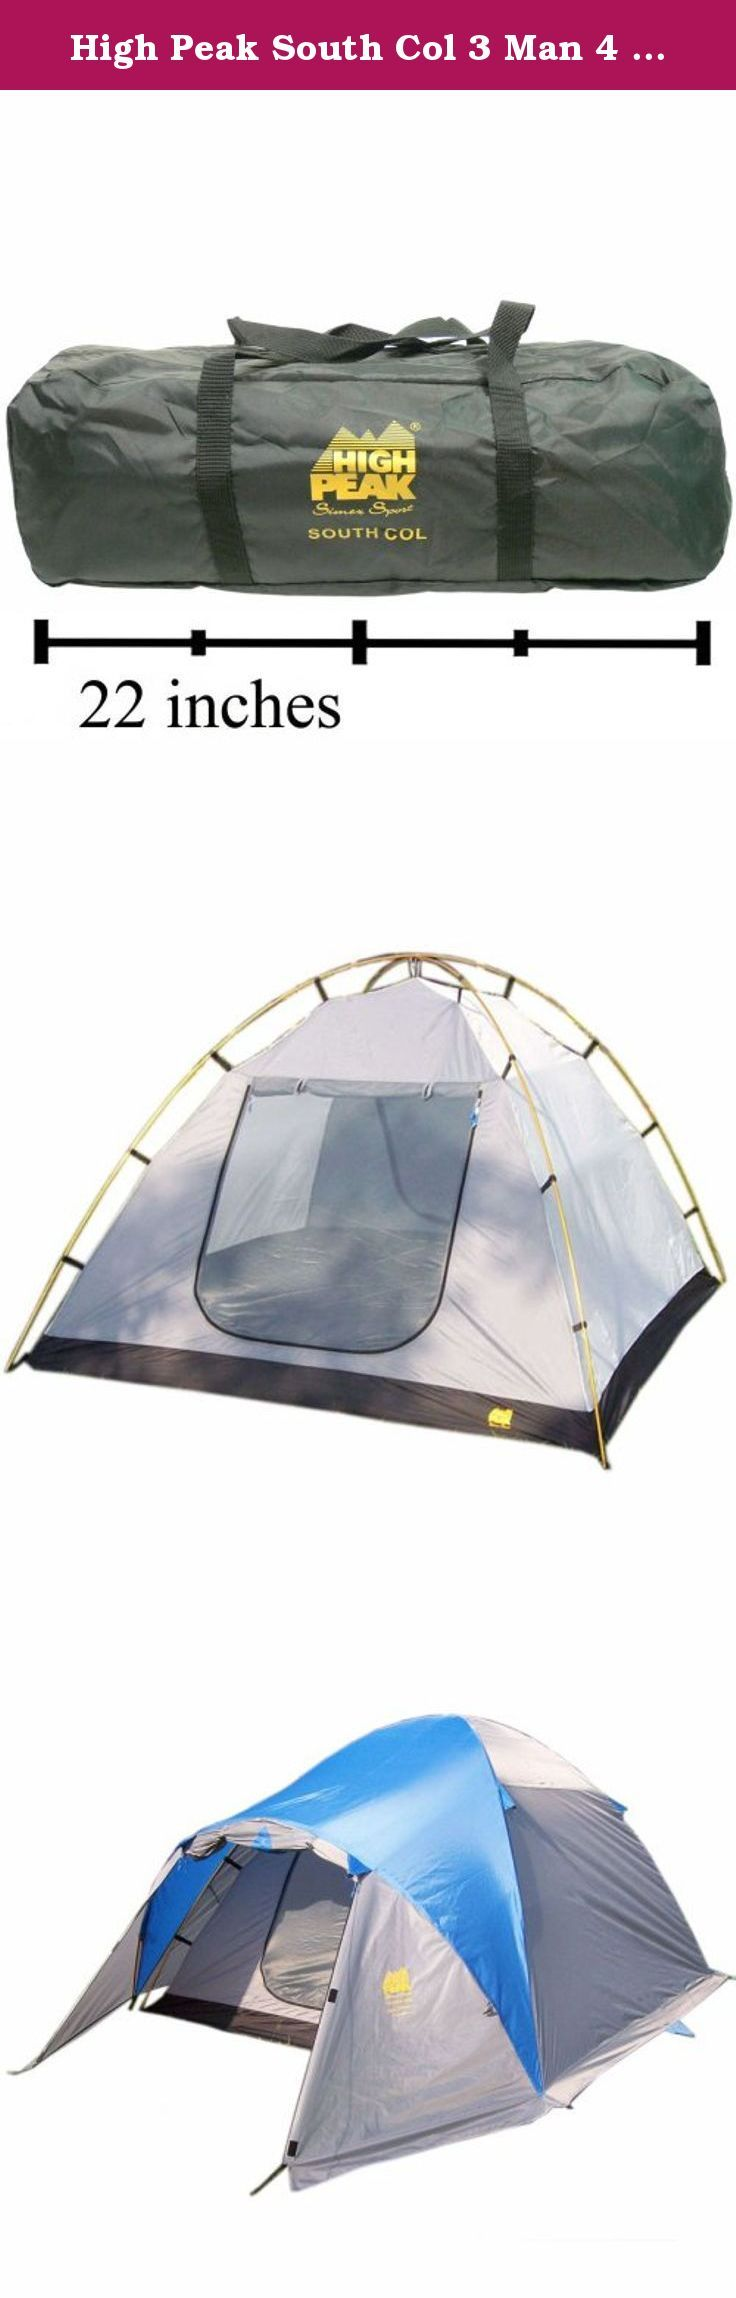 High Peak South Col 3 Man 4 Season Tent. This High Peak High Peak South Col 3000mm Waterproofing All-Season 3 person tent is the perfect way to lightly go wherever you want to go. Built to be compact for the avid hiker and backpacker, this tent is loaded. Premium quality tents like this don?t last at this far below retail. It features 2 entrances, spaces for 3 sleepers, inner tent pockets, a 100% polyester floor, and weighs only 9.7 pounds. This High Peak South Col compact tent is sure to...